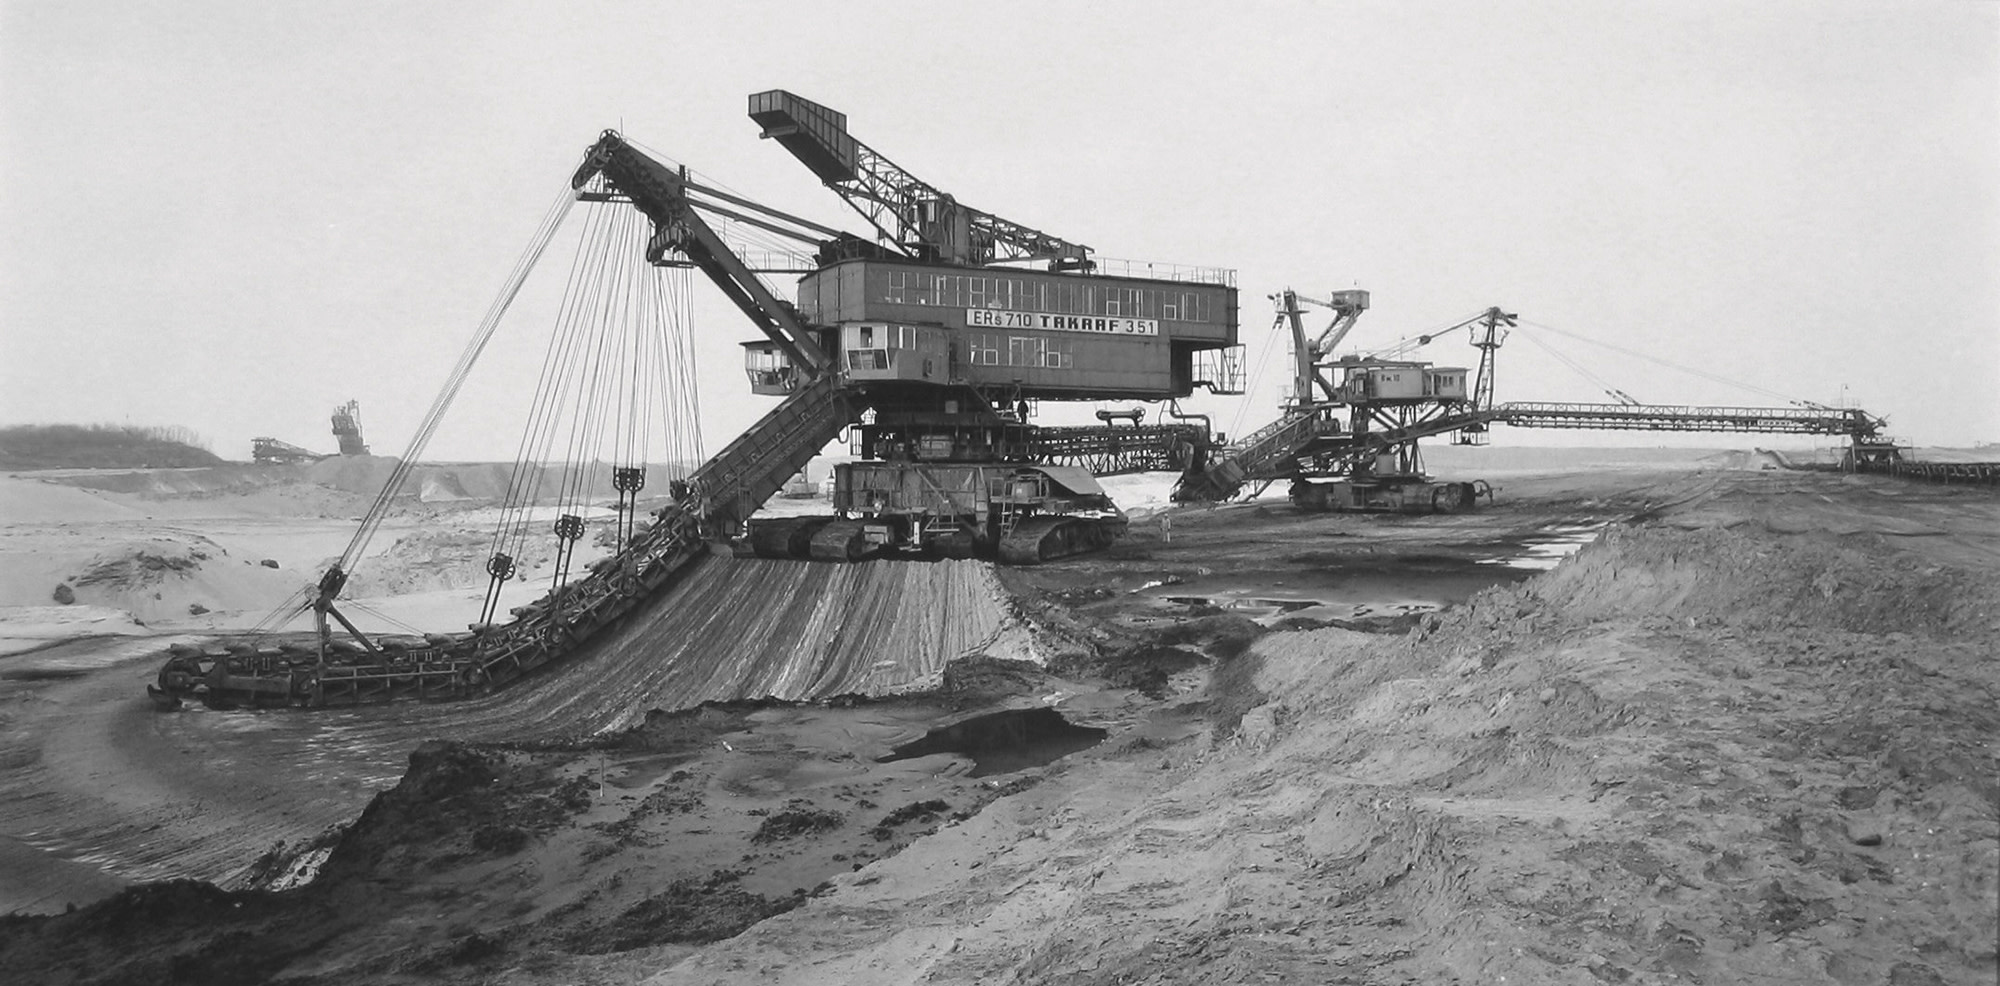 "<span class=""link fancybox-details-link""><a href=""/artists/128-claudia-fahrenkemper/works/35247-claudia-fahrenkemper-bucket-chain-excavator-lignite-mine-profen-germany-1993/"">View Detail Page</a></span><div class=""artist""><strong>Claudia Fährenkemper</strong></div> b. 1959 <div class=""title""><em>Bucket Chain Excavator, Lignite Mine, Profen, Germany</em>, 1993</div> <div class=""signed_and_dated"">From the series ""Mining Machinery""<br /> Signed, titled, dated, and editioned, in pencil, au verso<br /> Printed in 2019</div> <div class=""medium"">Gelatin silver print</div> <div class=""dimensions"">10 ½ x 19 ¾ inch (26.67 x 50.17 cm)</div> <div class=""edition_details"">Edition of 8 + 3 APs (#1/8)</div>"